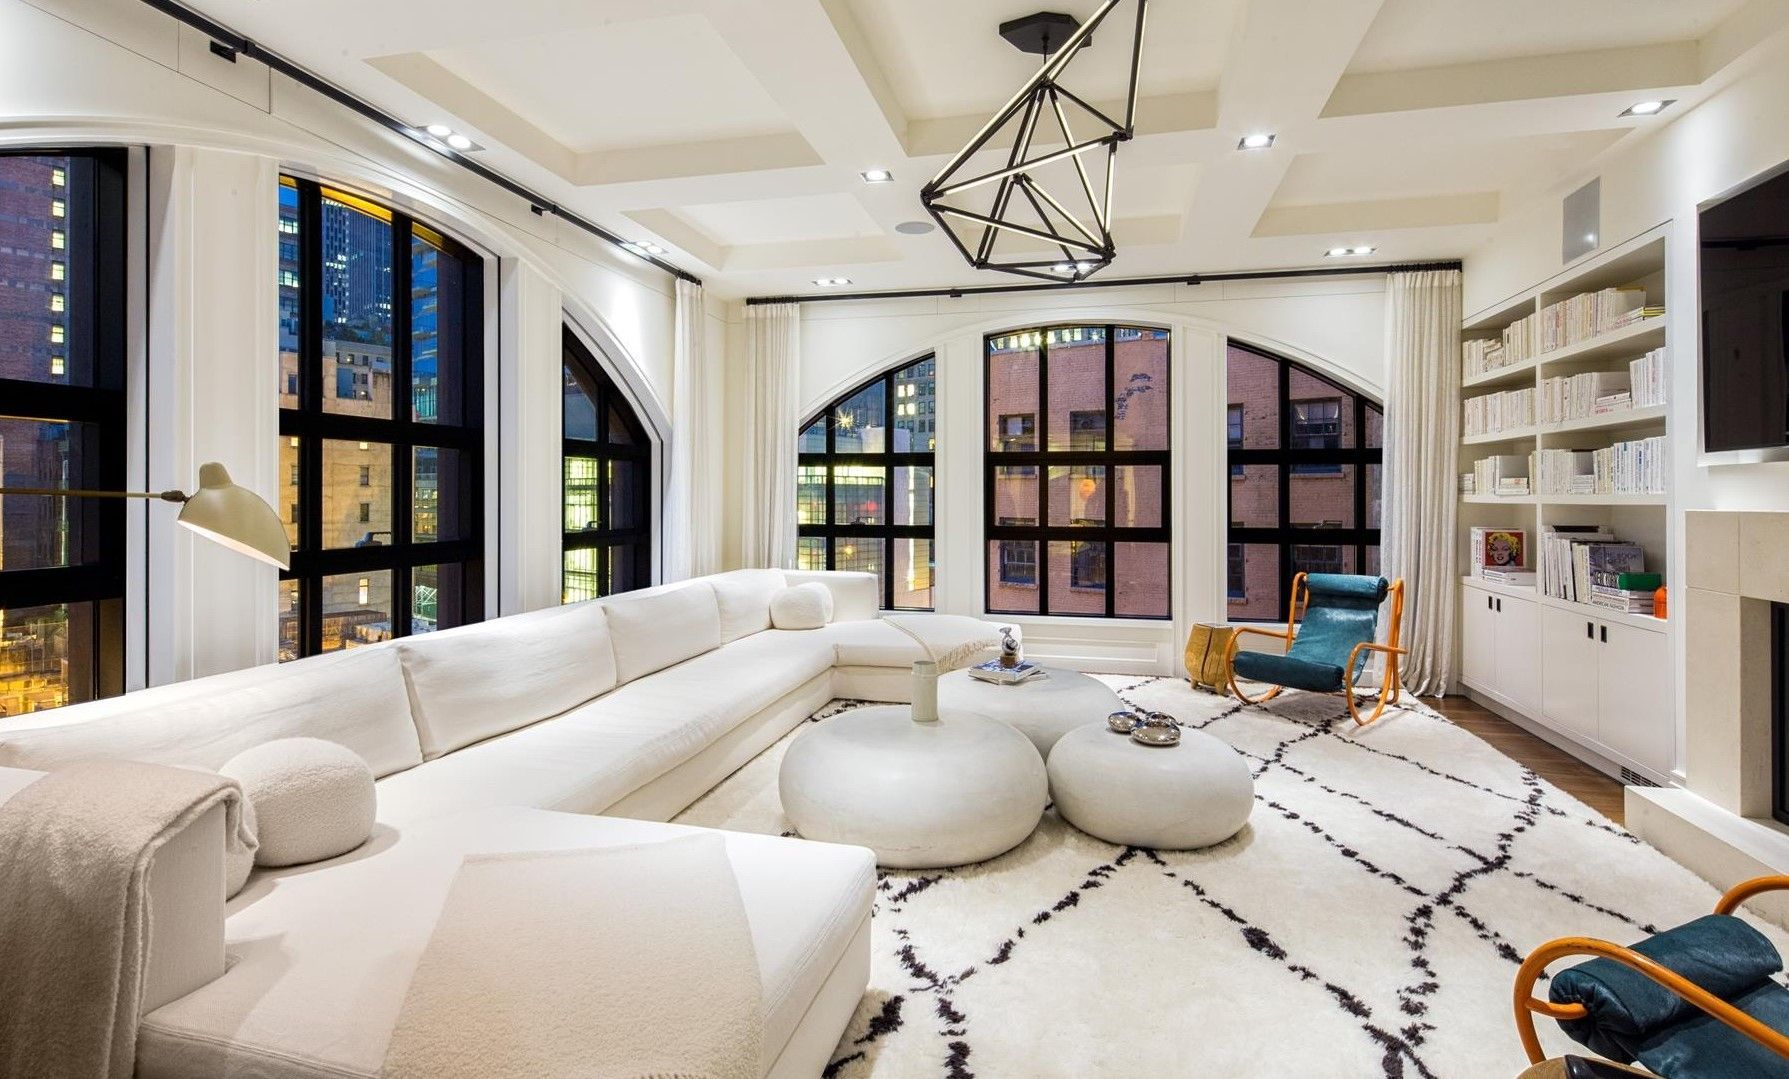 I Would Be Lounging All Day Long In This Chic Family Room